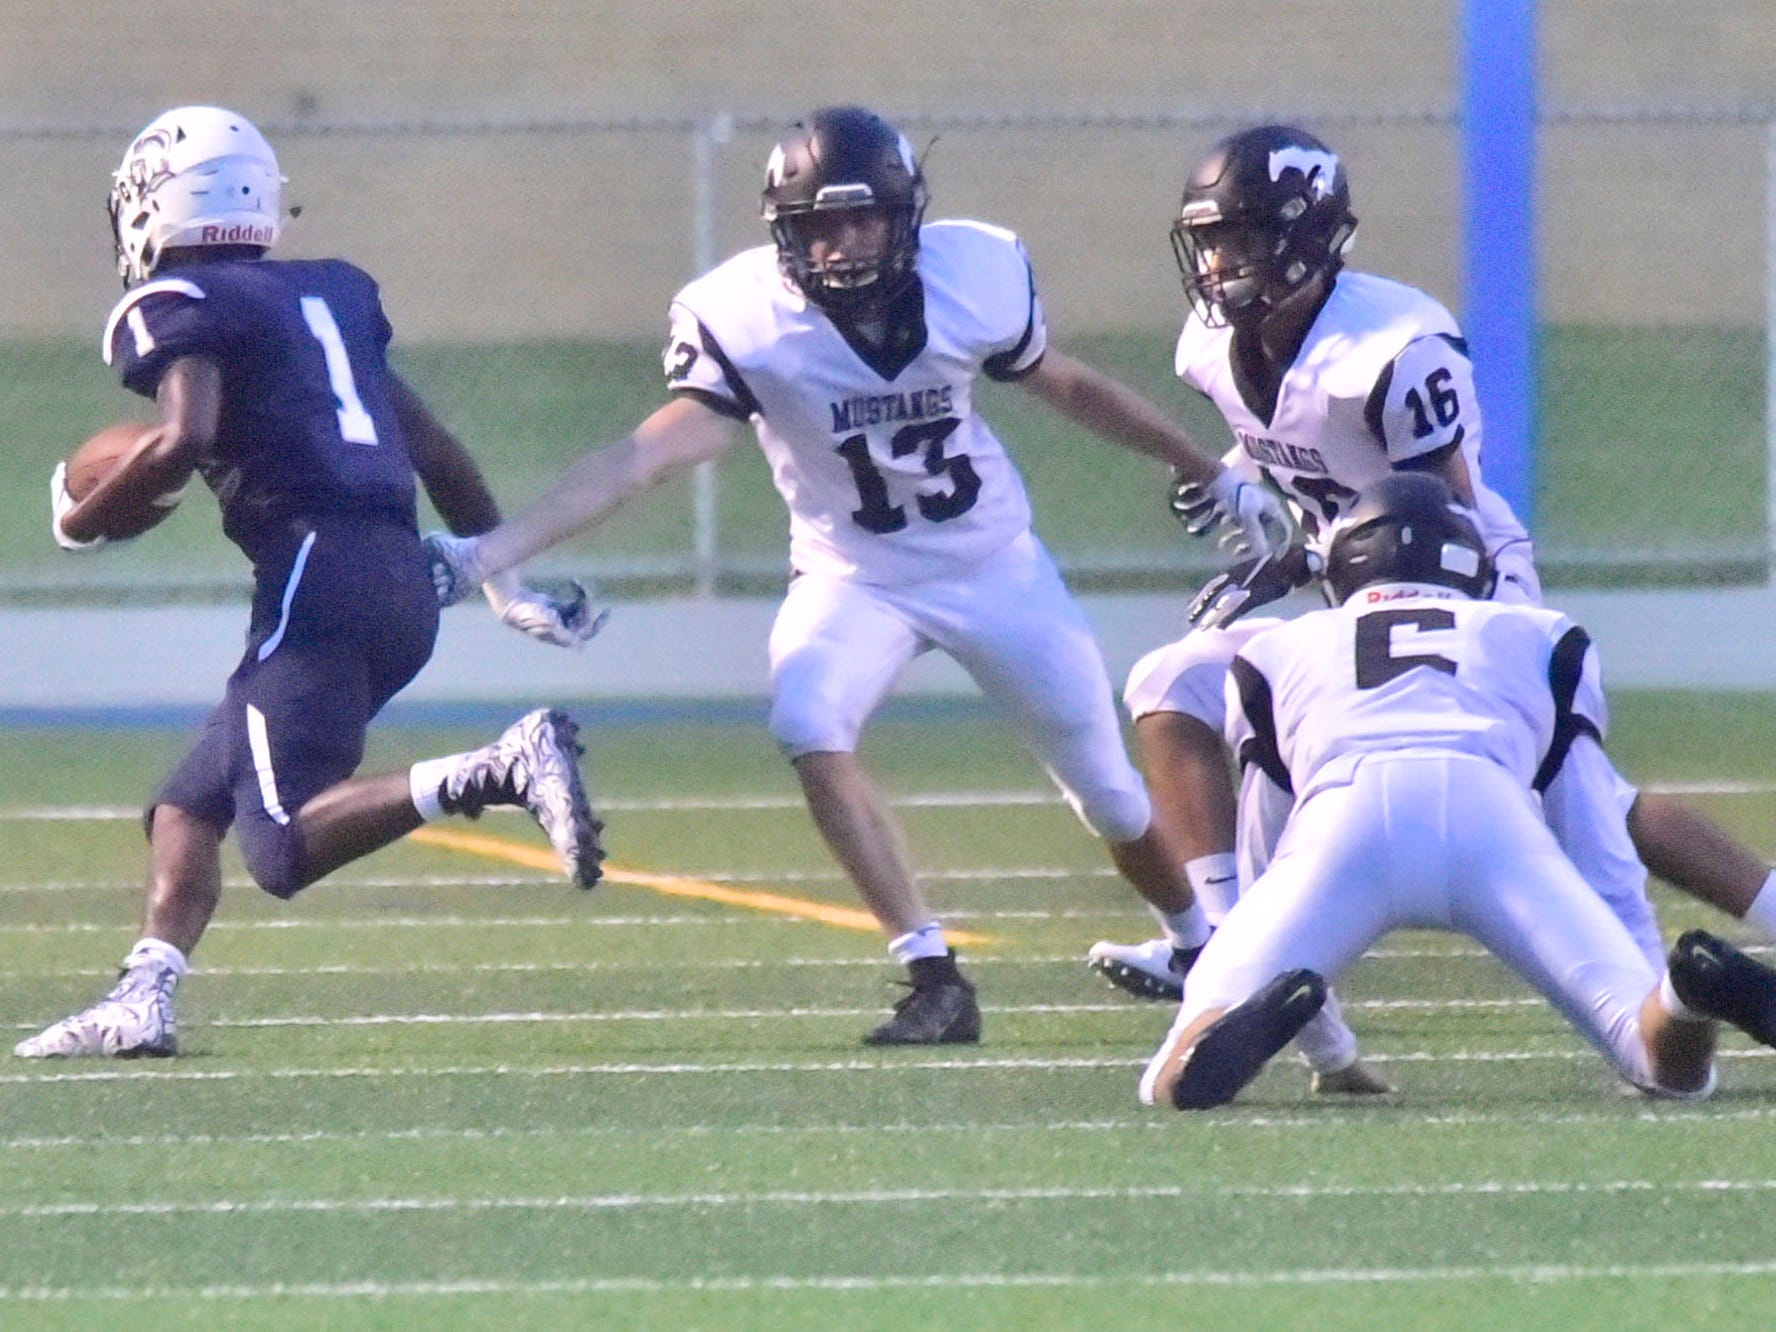 Chambersburg's Kevin Lee (1) gets away from South Western defenders to score. Chambersburg defeated South Western 51-26 in football on Friday, Aug. 31, 2018.